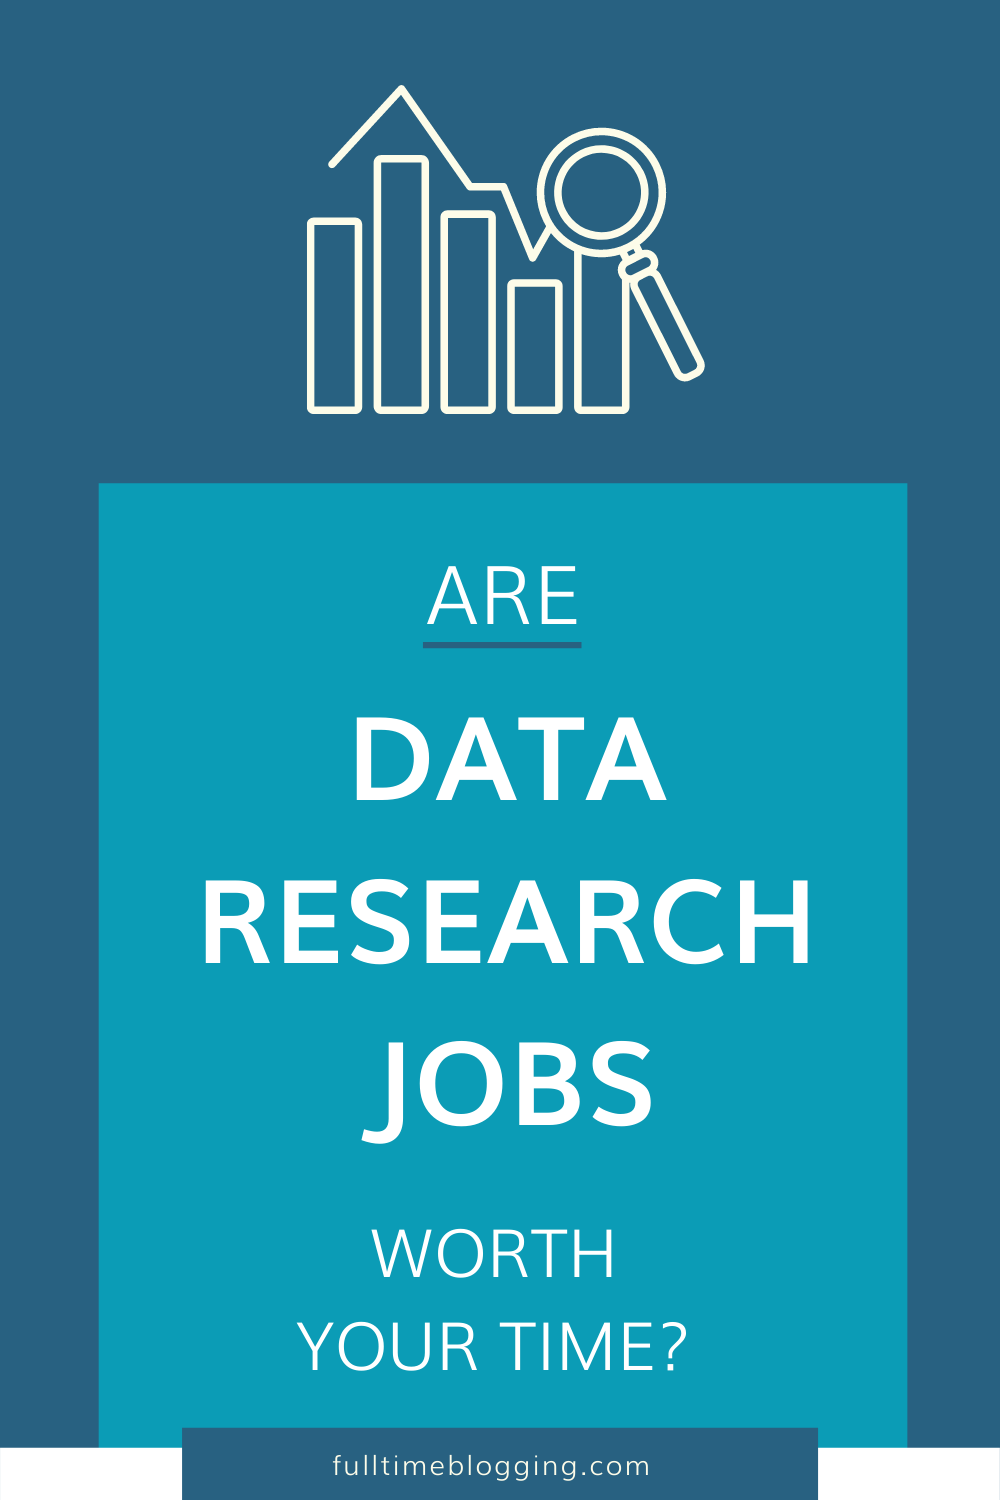 Data Research Jobs